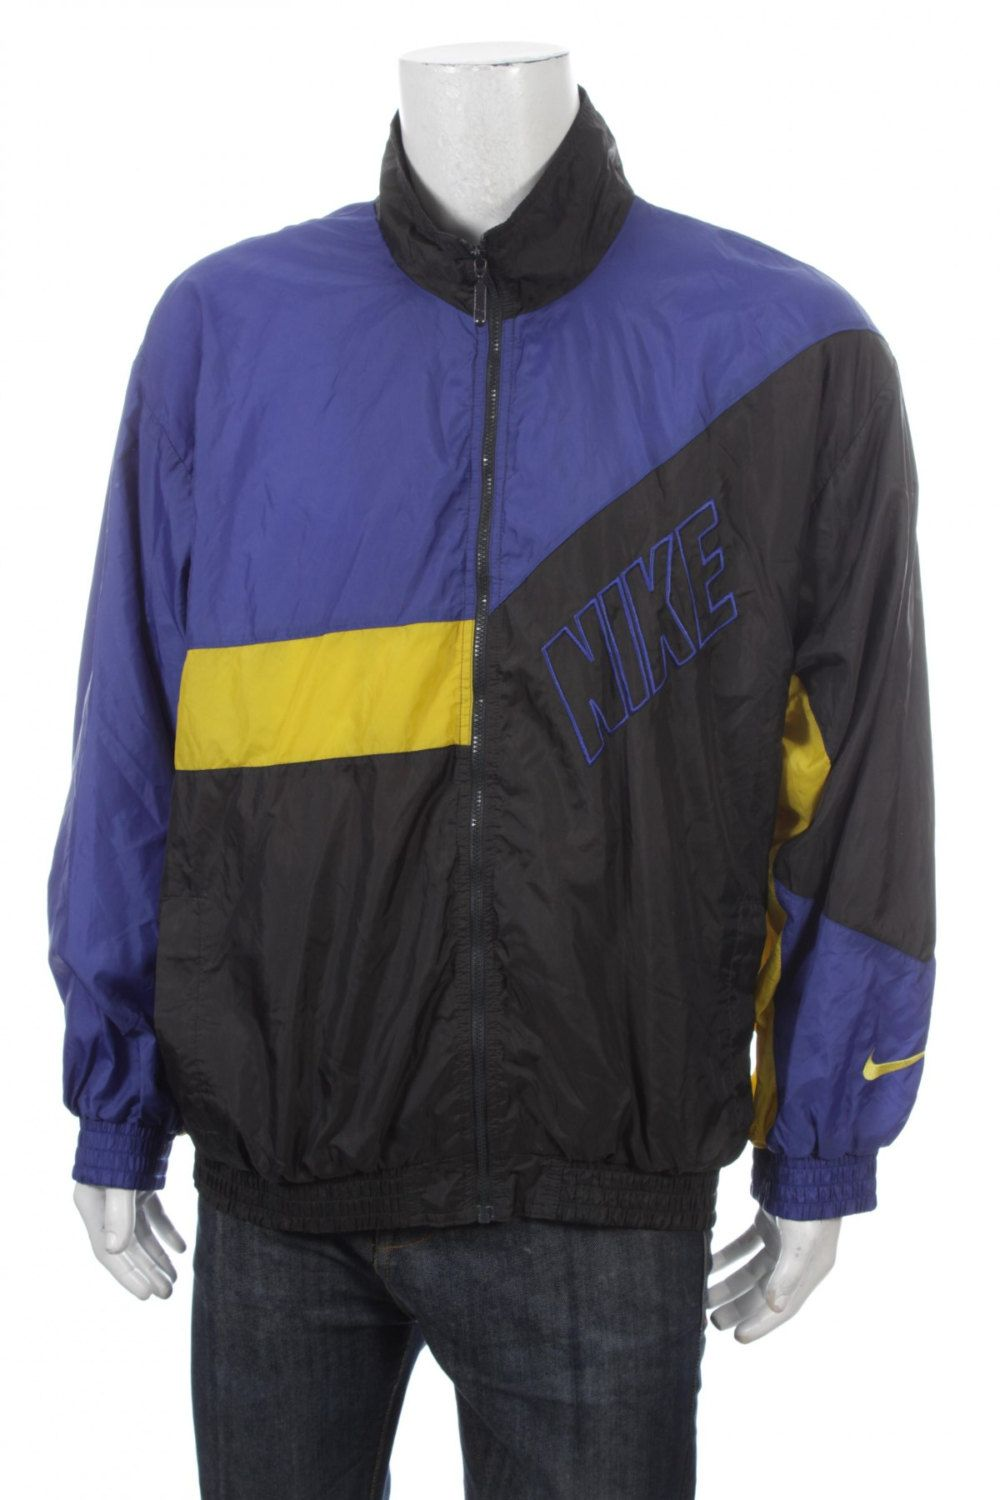 VINTAGE 90S Nike Swoosh Windbreaker Spell Out Big Logo Color Block  Blue Yellow Black SizeXL by VapeoVintage on Etsy a7905f2f37